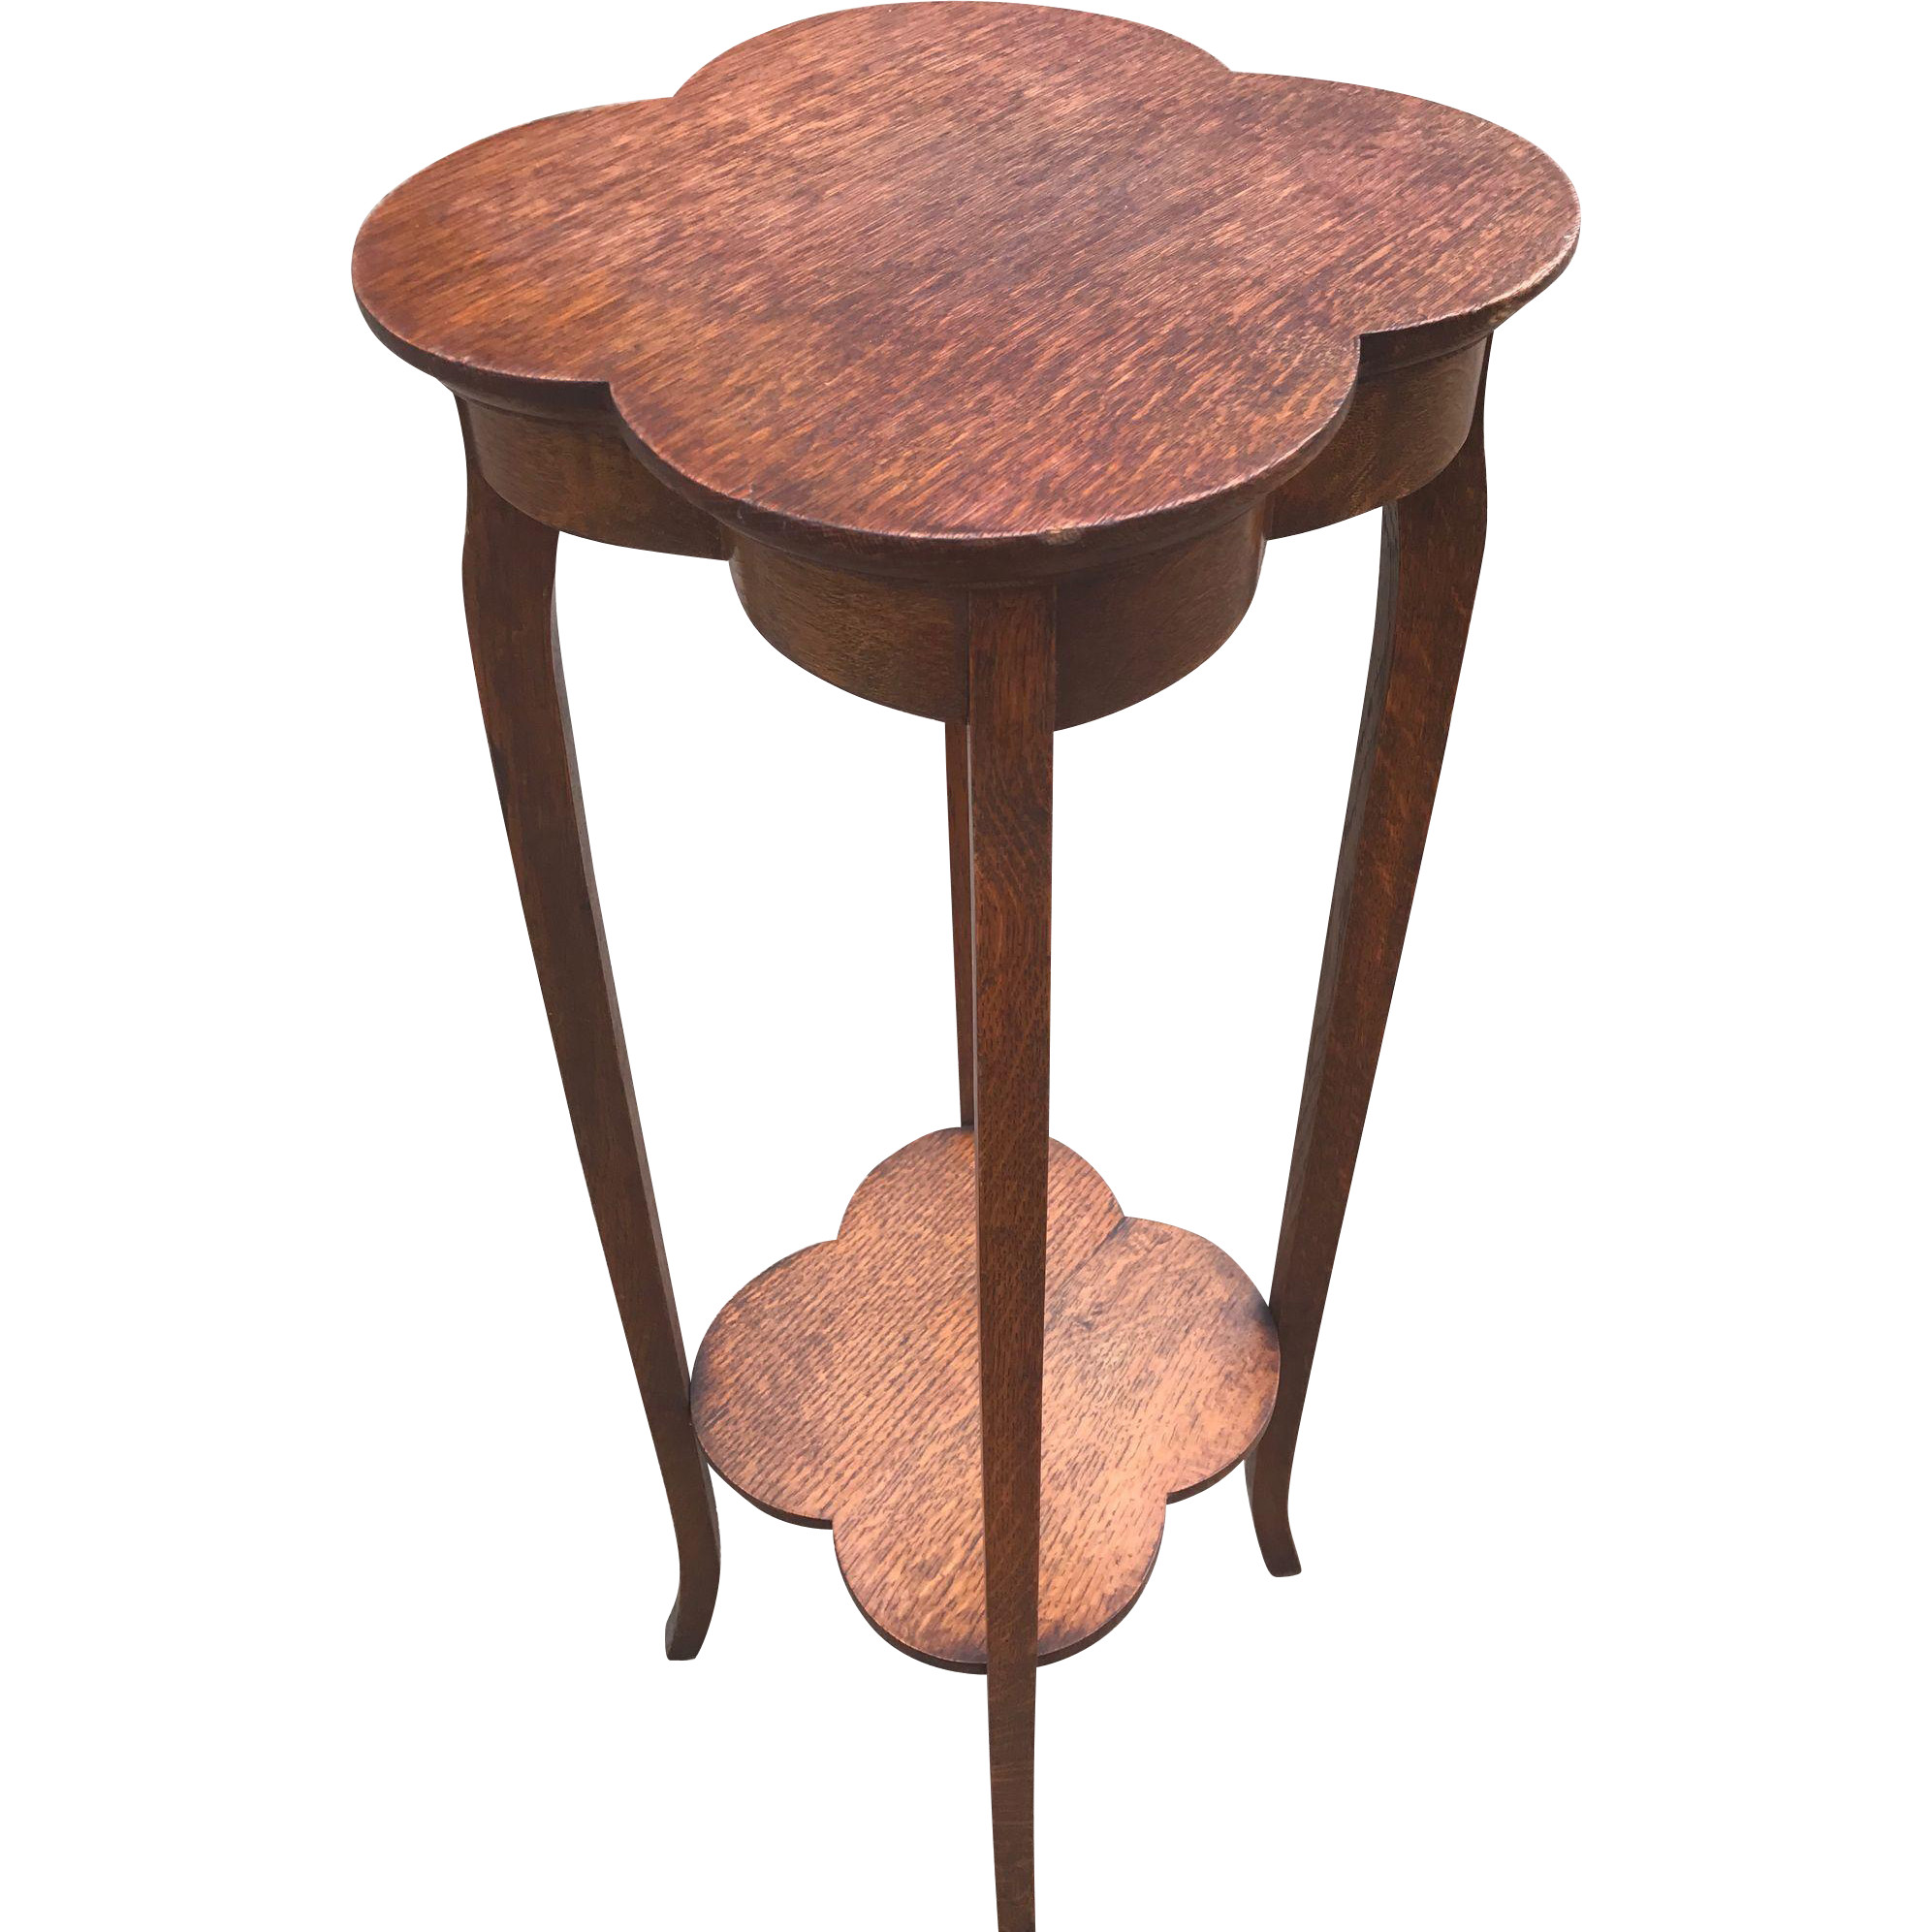 Arts & Crafts Early 1900 Antique Hand-Crafted Solid Oak Flower or Plant Table Sculpture Stand Clover Leaf Top